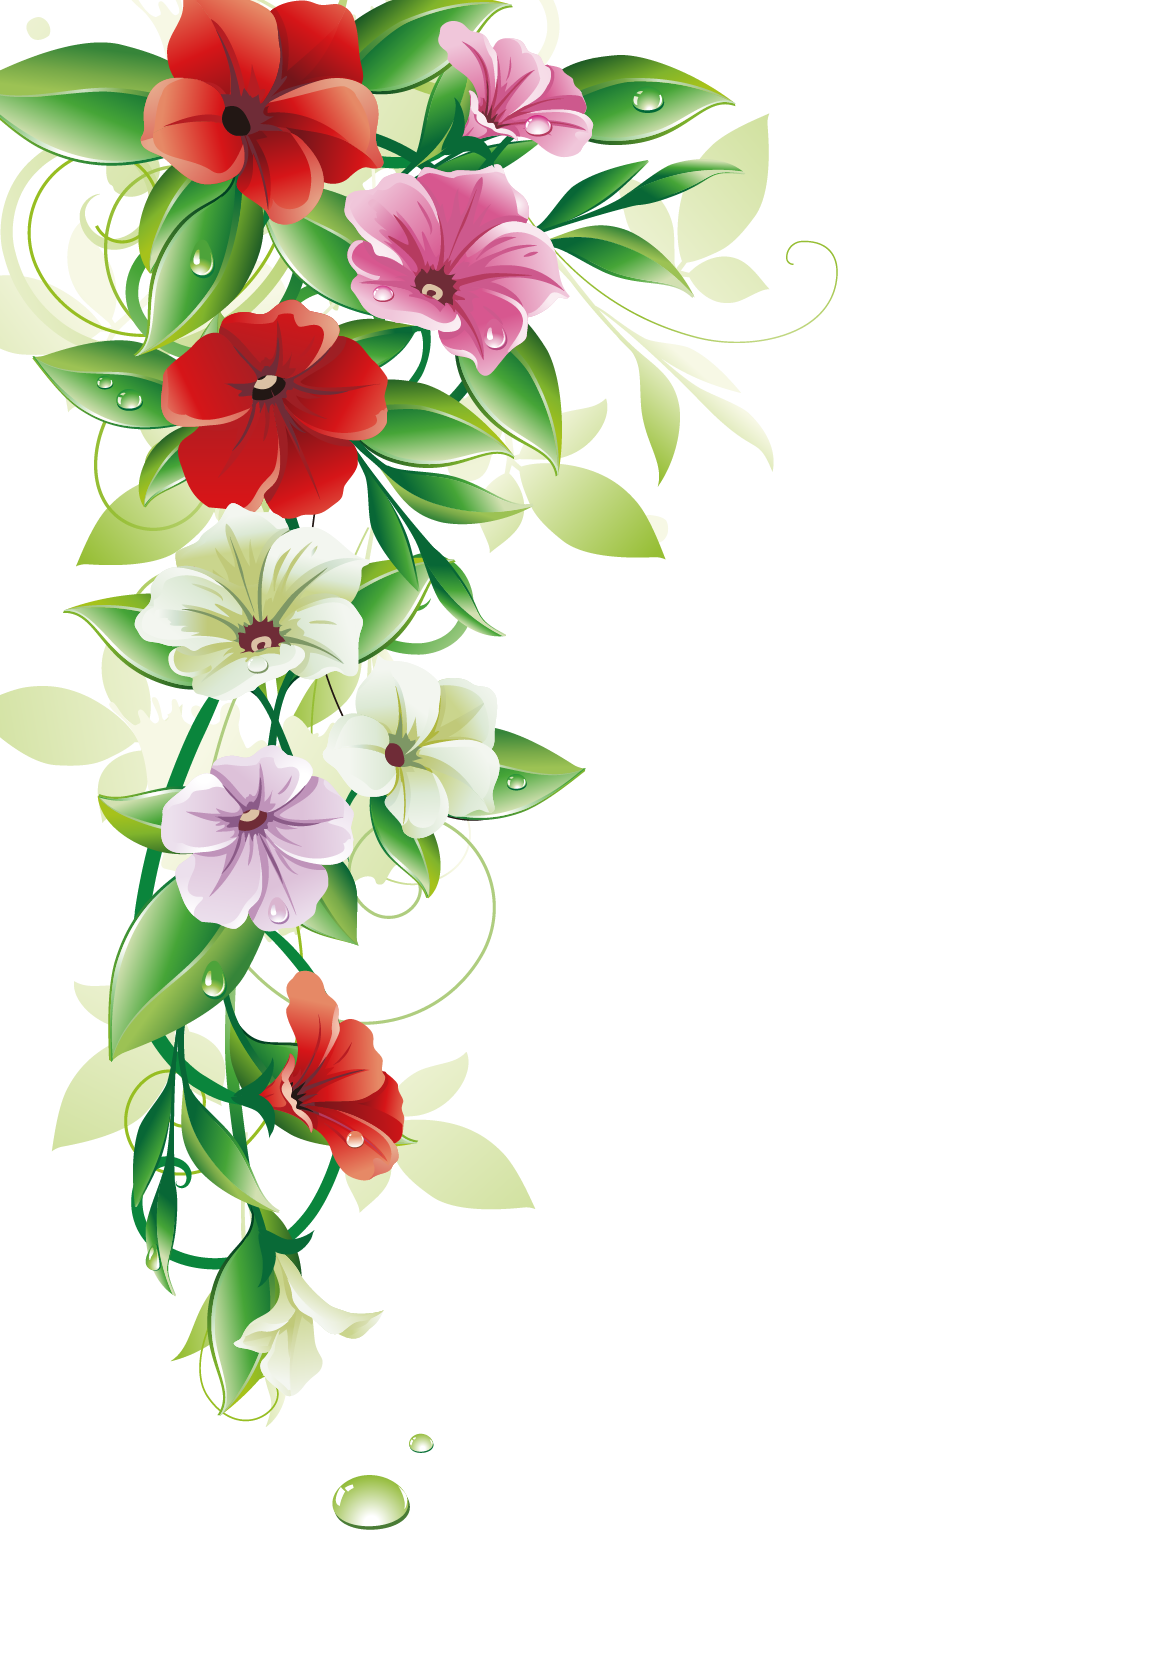 Flower Border Free Photo PNG PNG Image